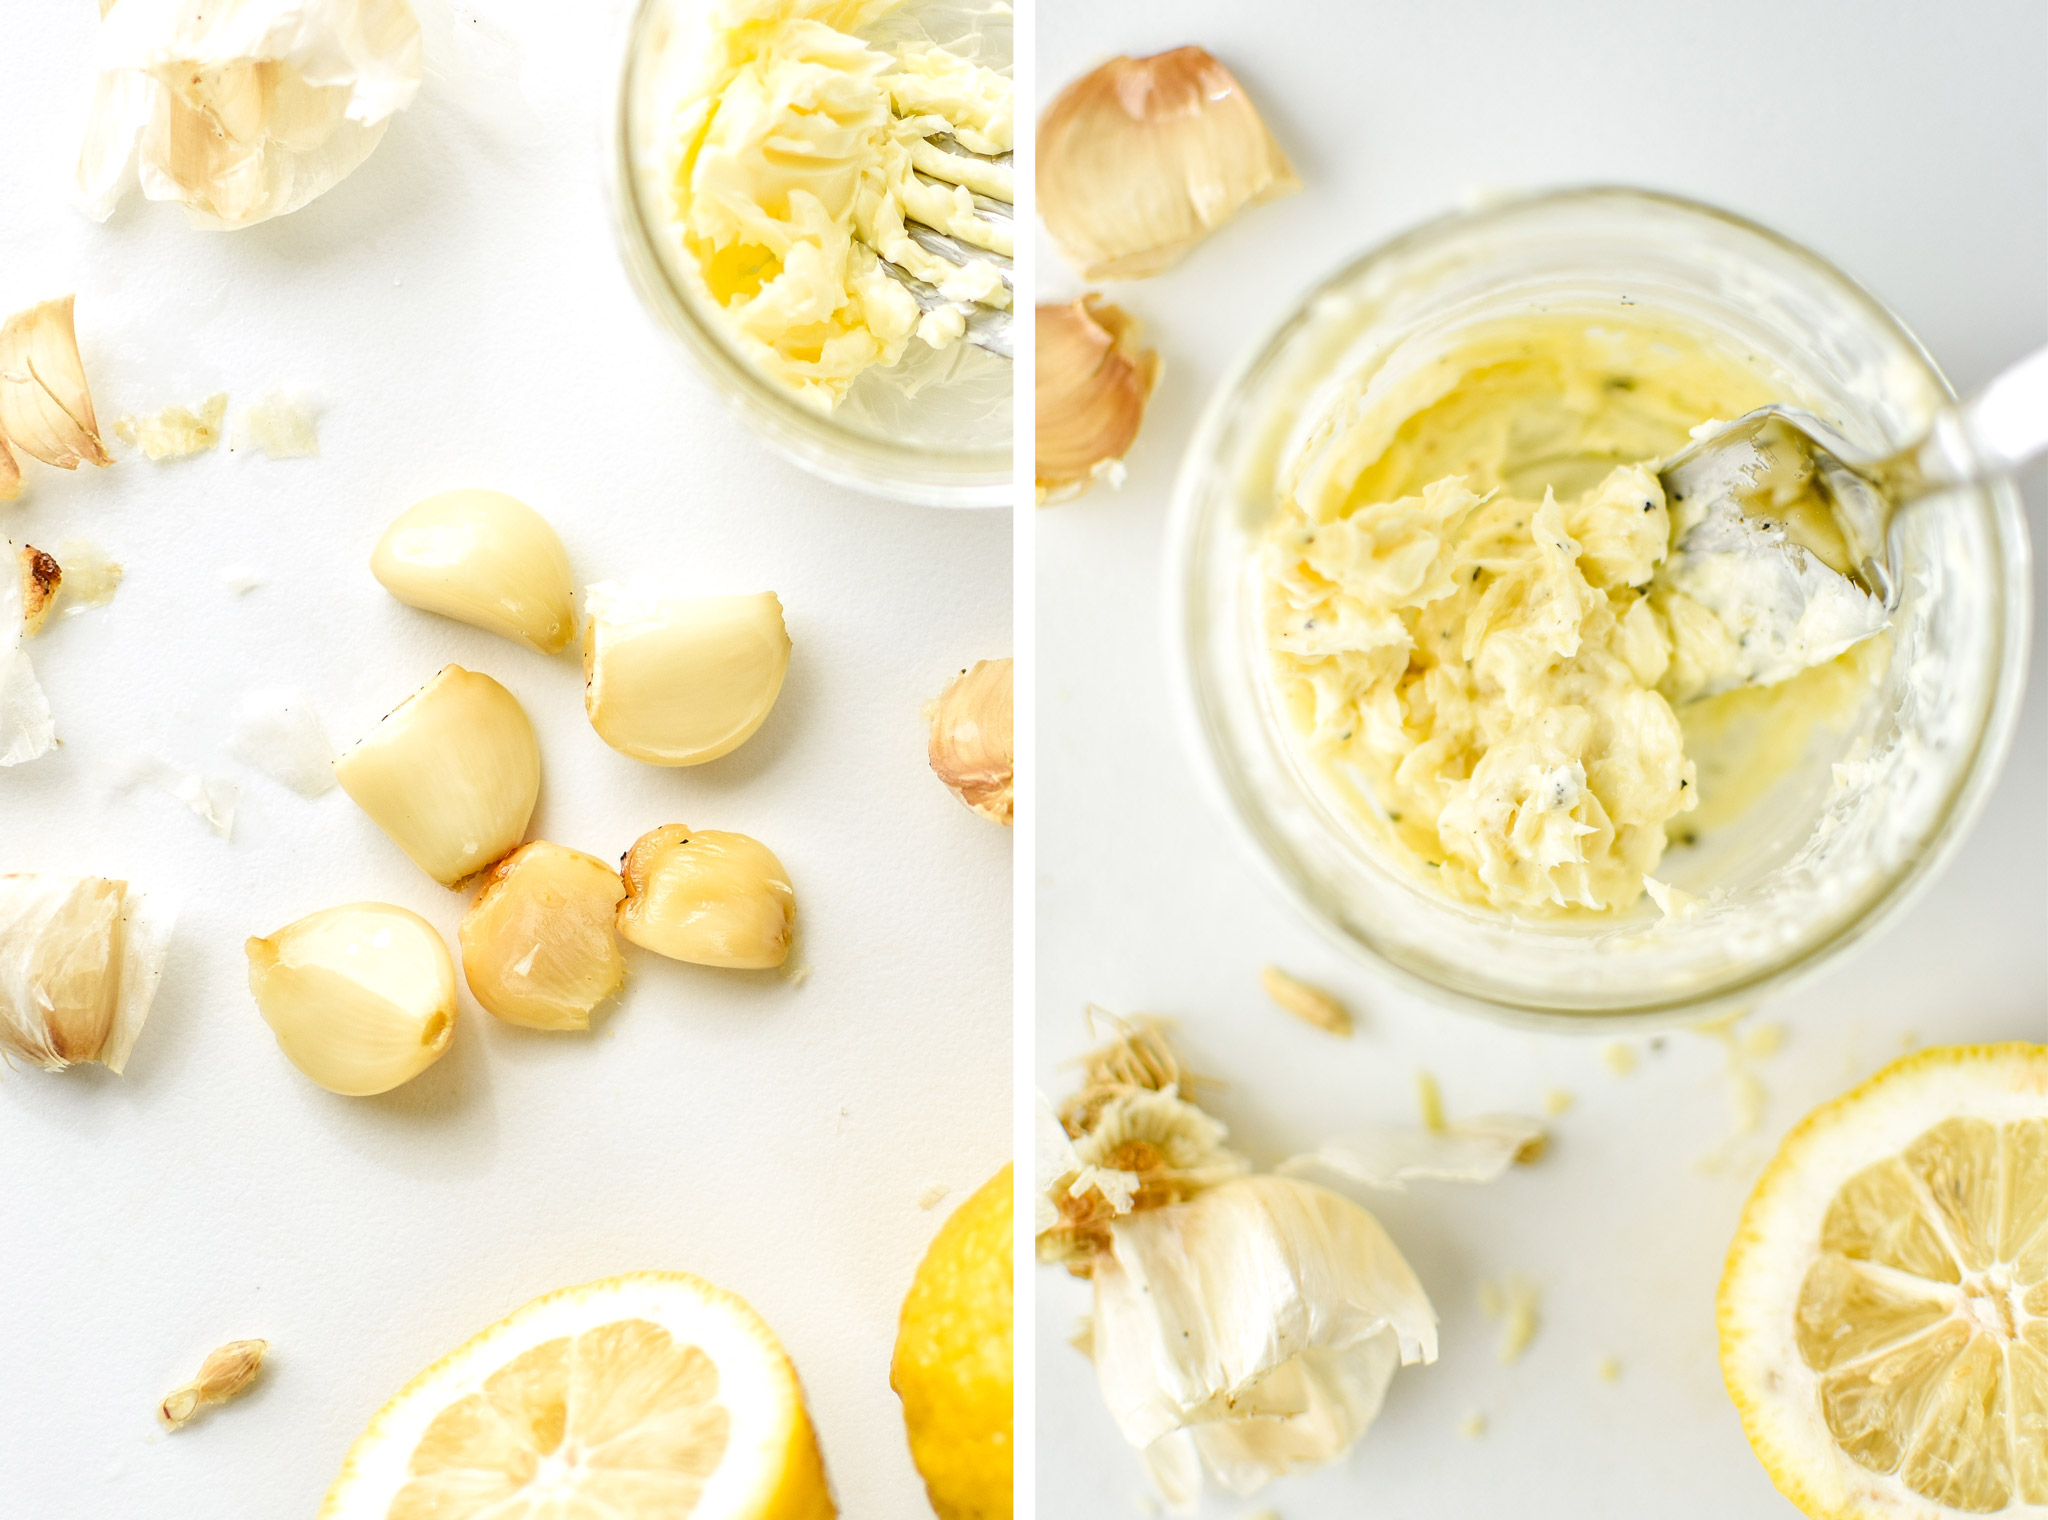 making lemon garlic butter for chicken meatballs two ways meal prep lunches